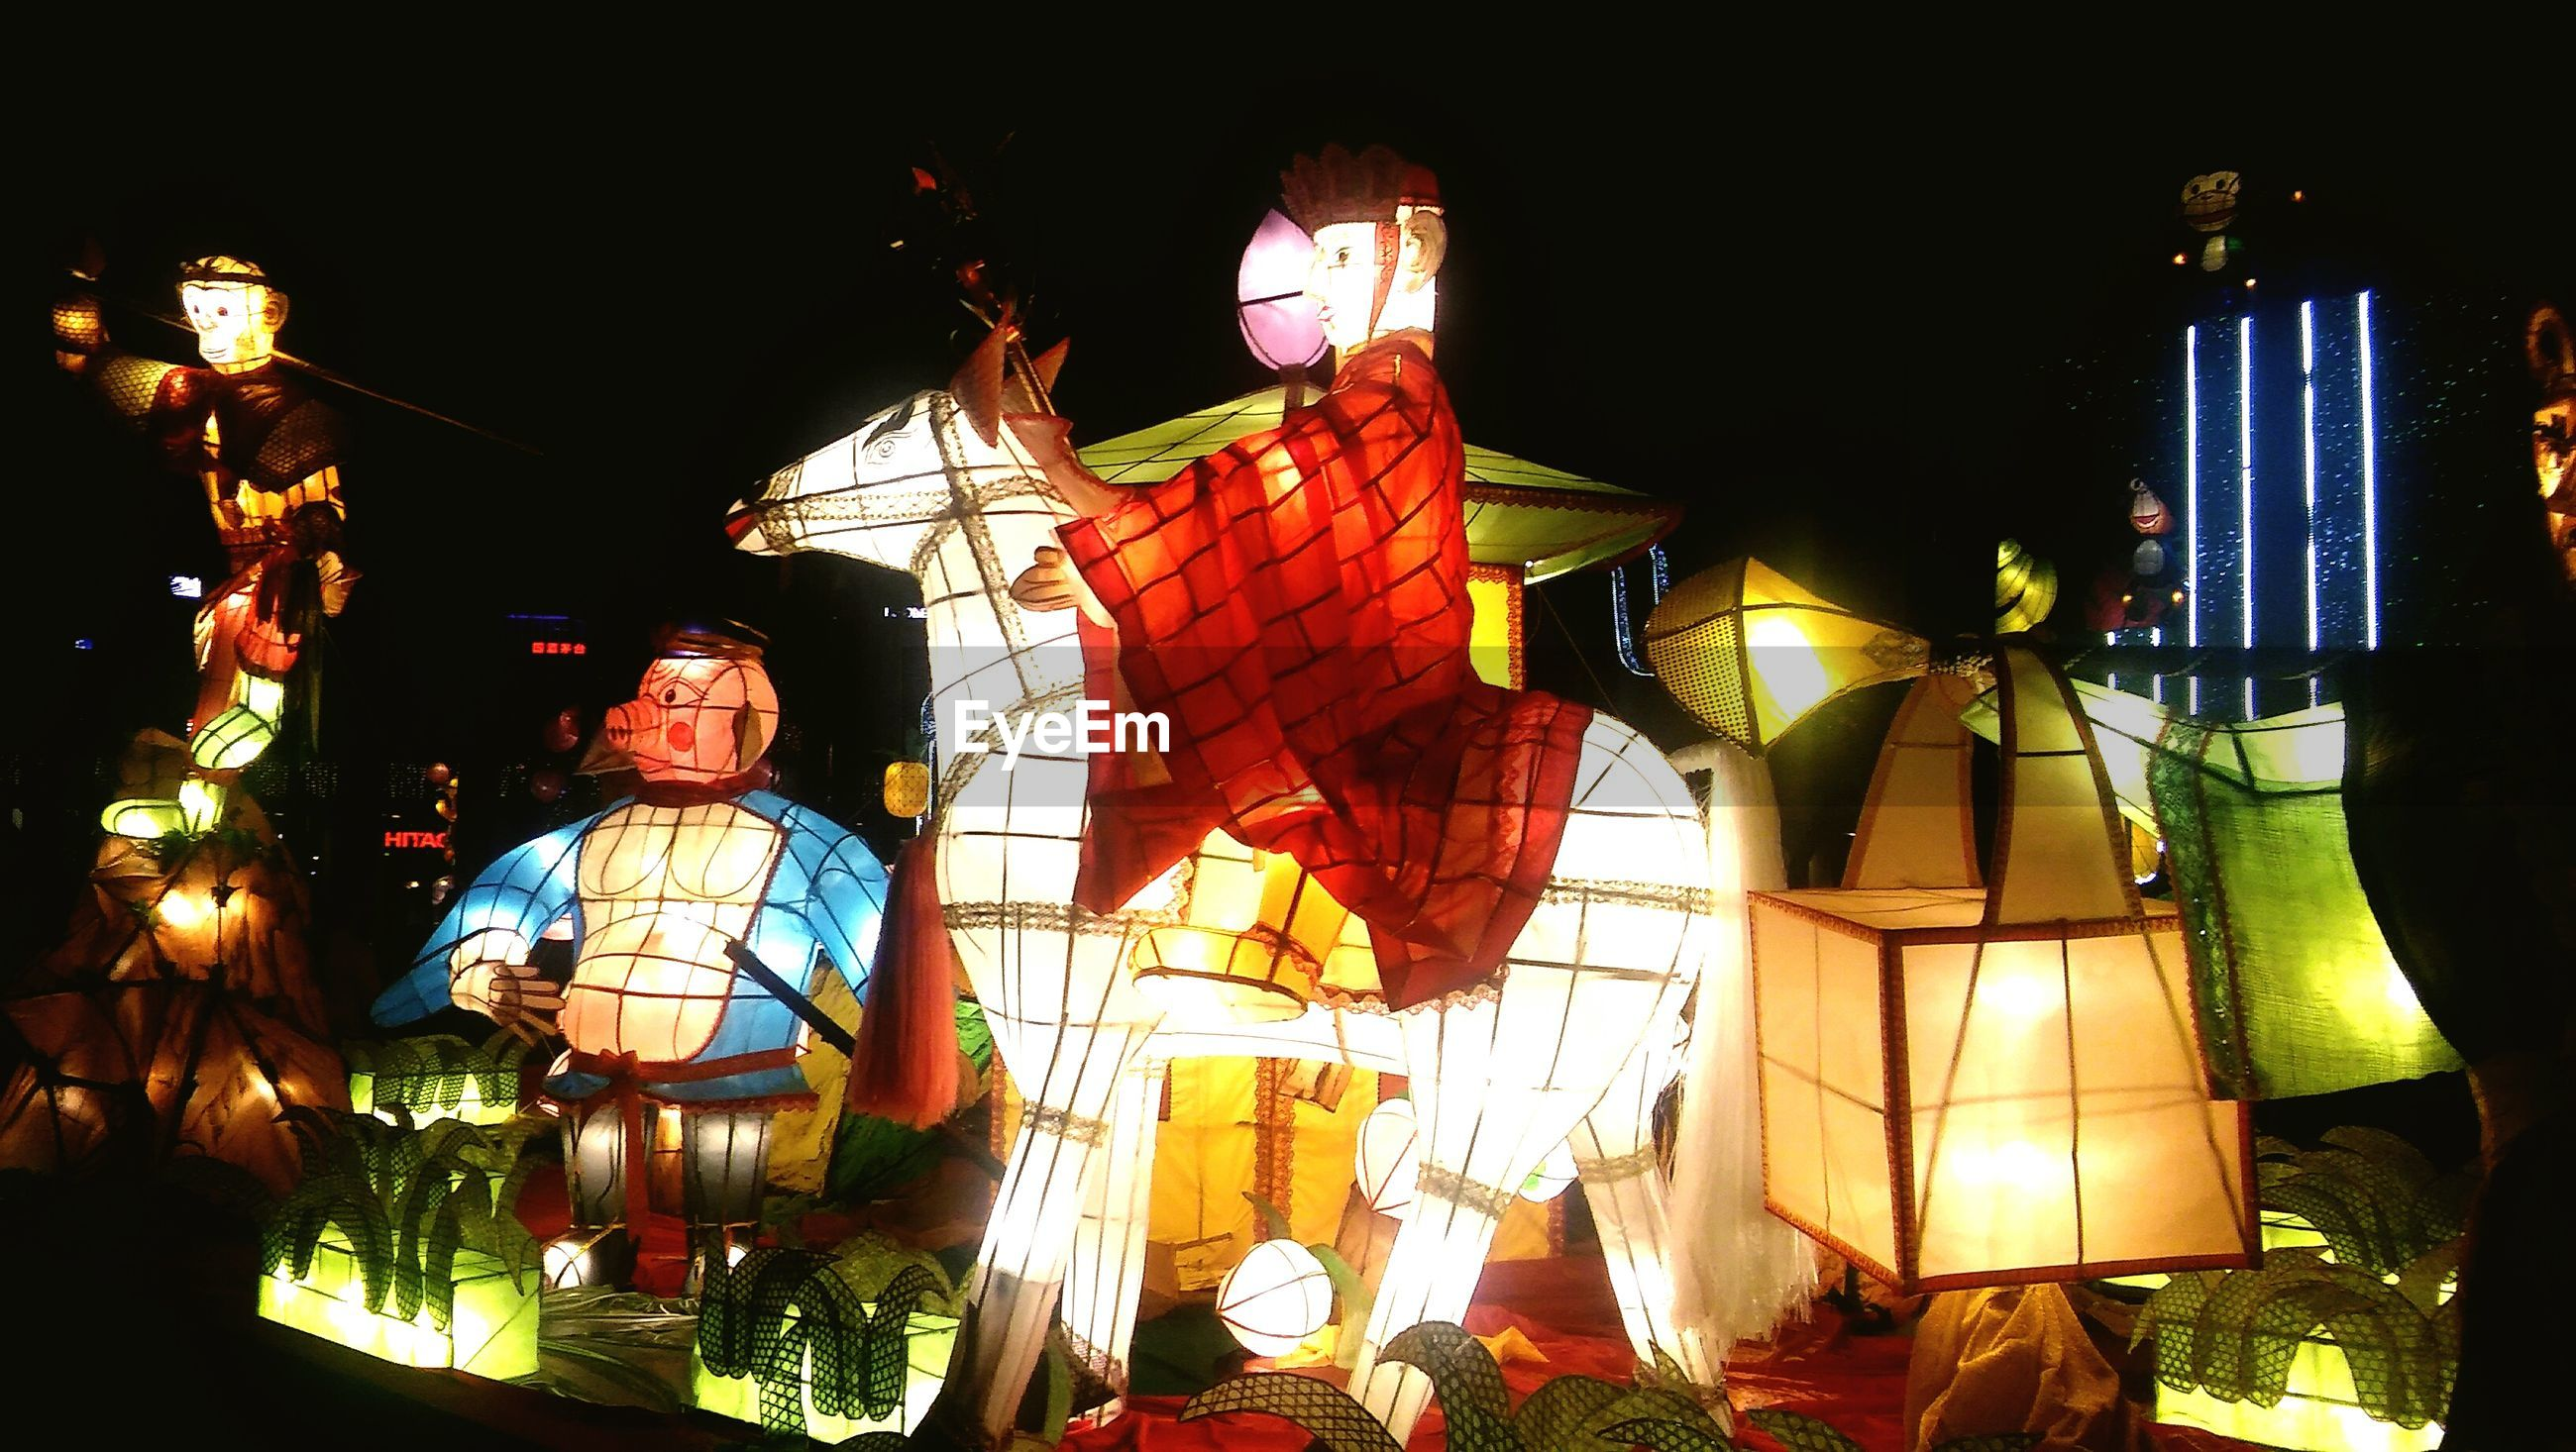 Illuminated lantern decorations in dark